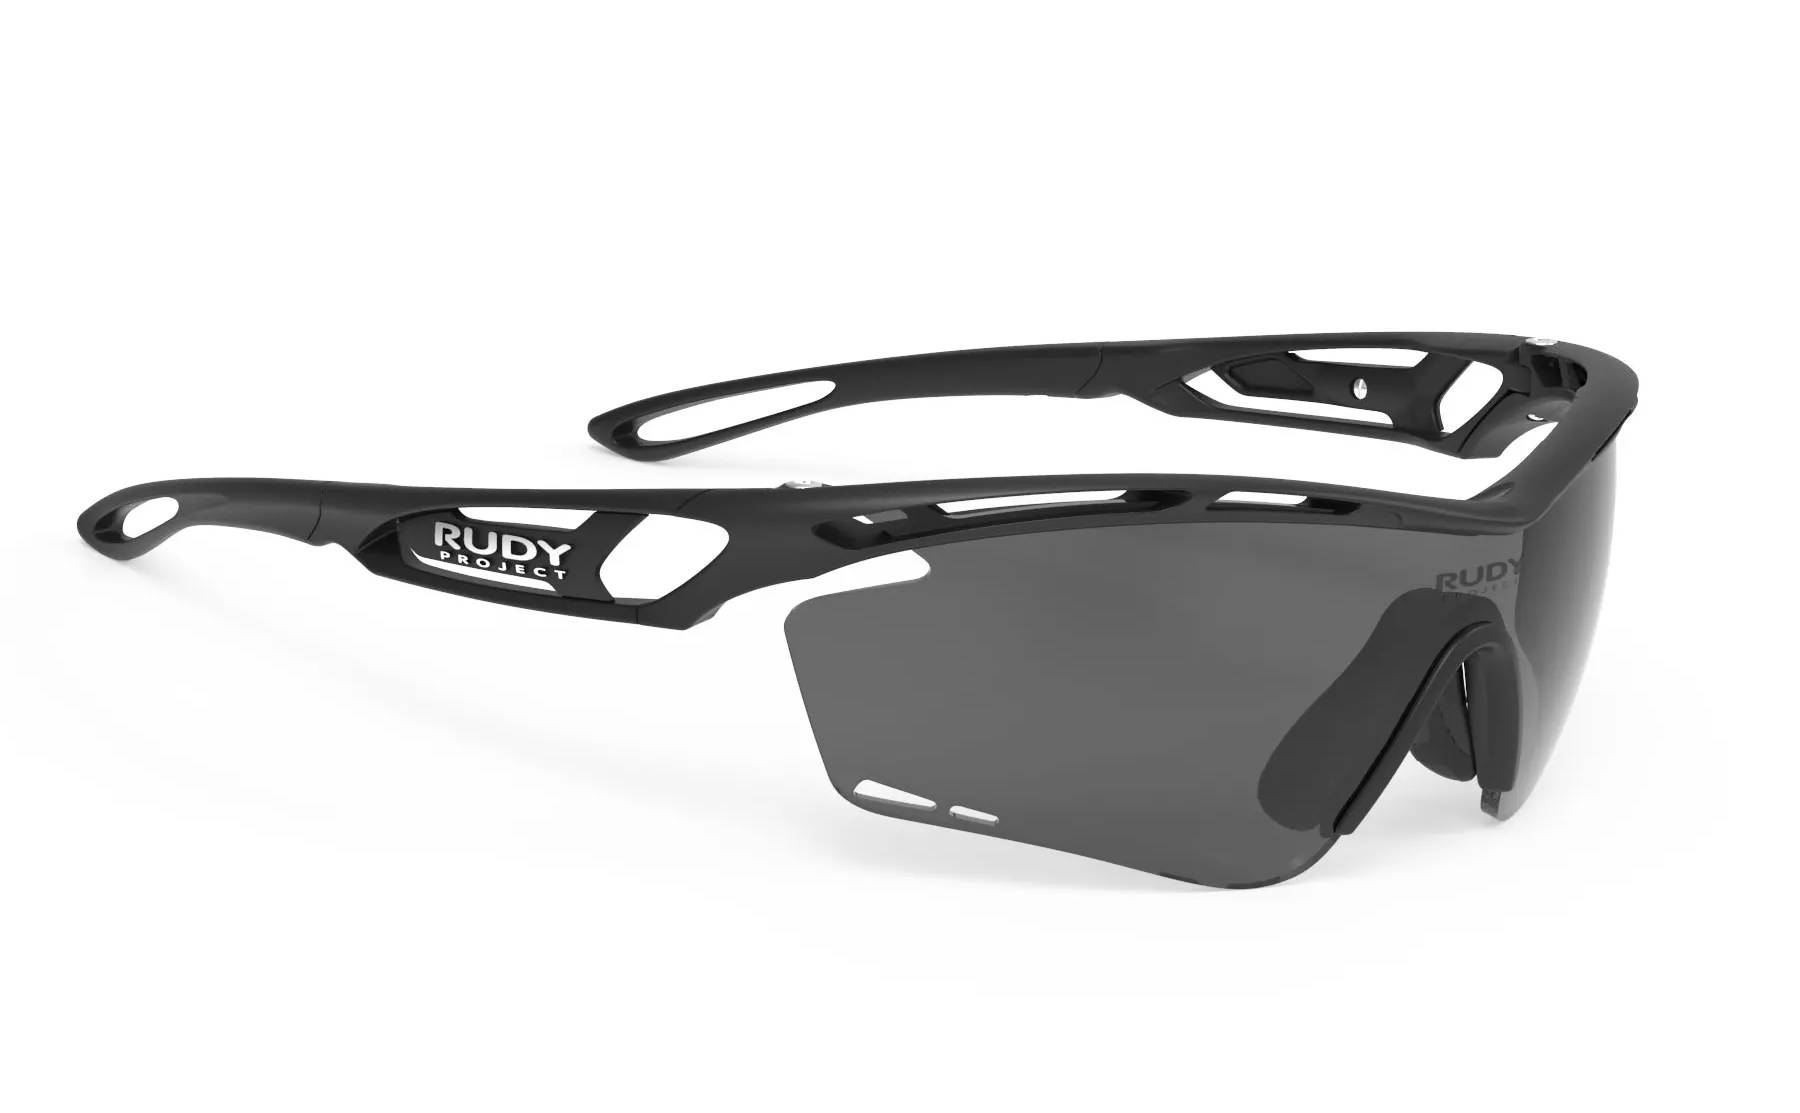 Rudy Project Tralyx Sunglass